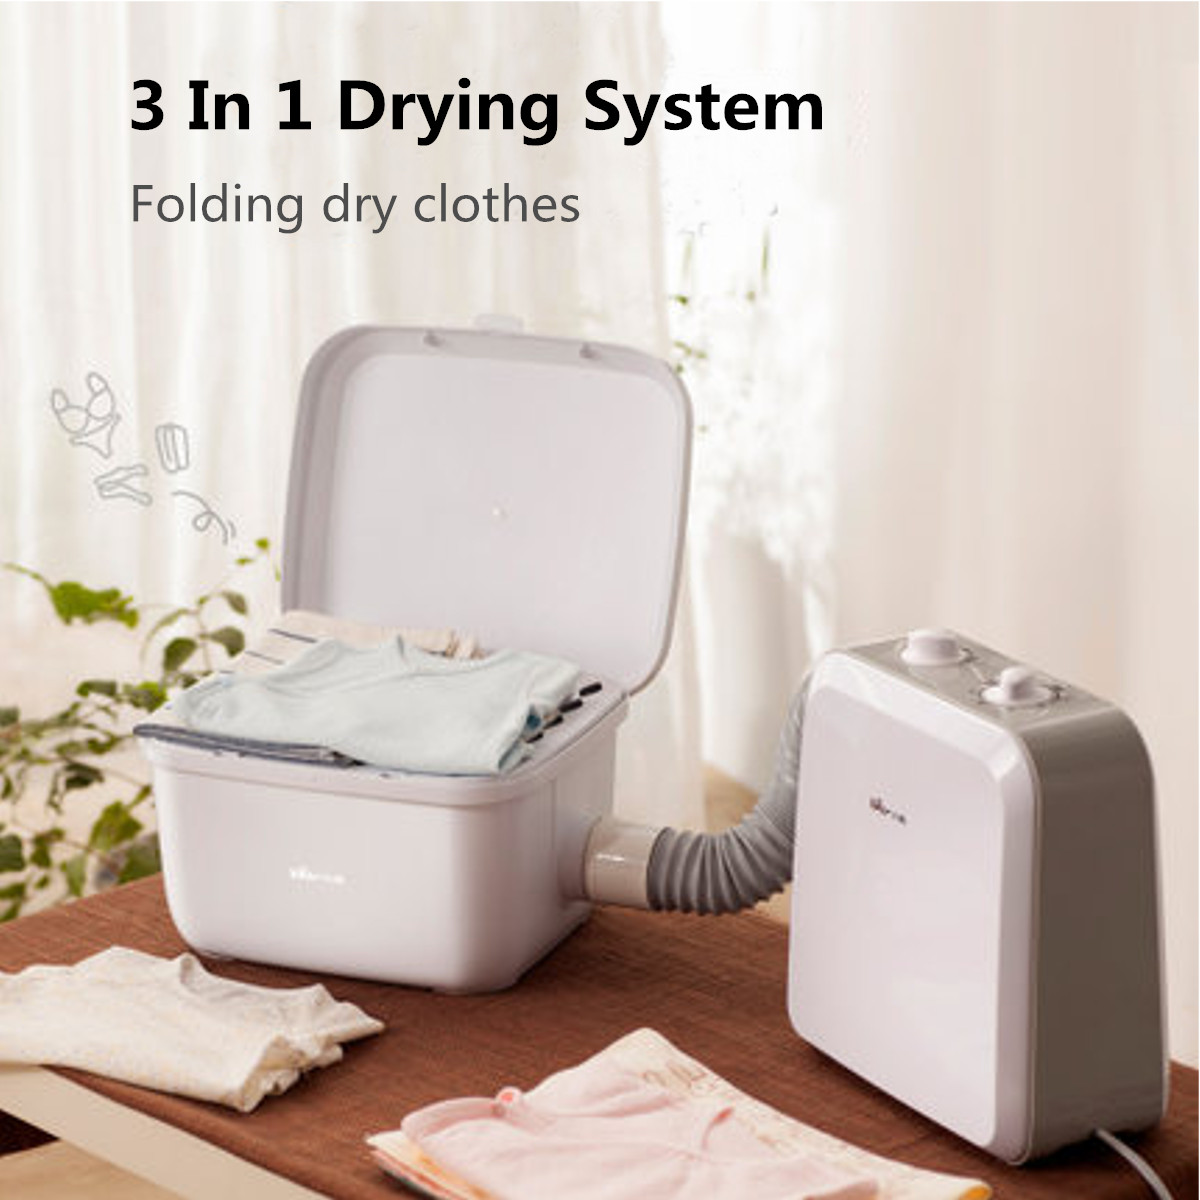 Electric Heater Household Clothes Dryer Quick Drying Clothes Drying Quilt Wardrobe Machine Home High Temperature Air Dryer RackElectric Heater Household Clothes Dryer Quick Drying Clothes Drying Quilt Wardrobe Machine Home High Temperature Air Dryer Rack